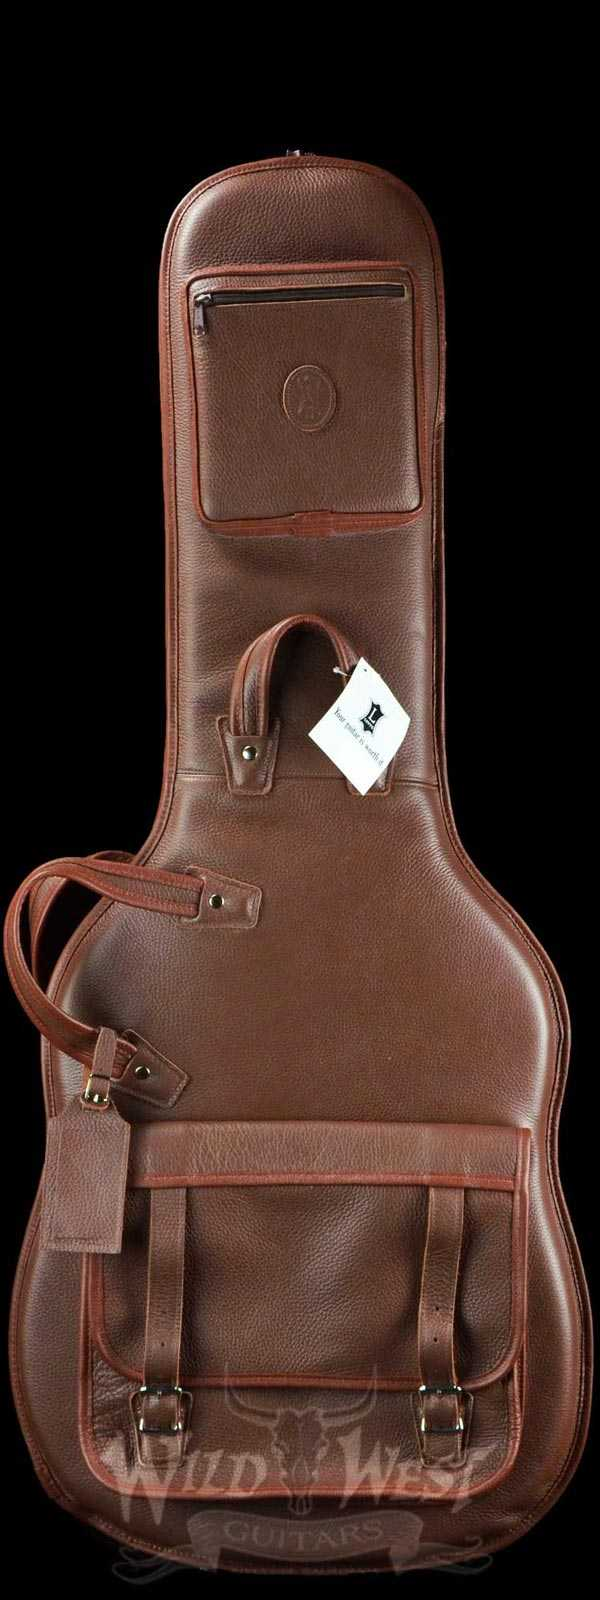 Levy's Leathers LM18-BRN Leather Deluxe Electric Guitar Bag Brown